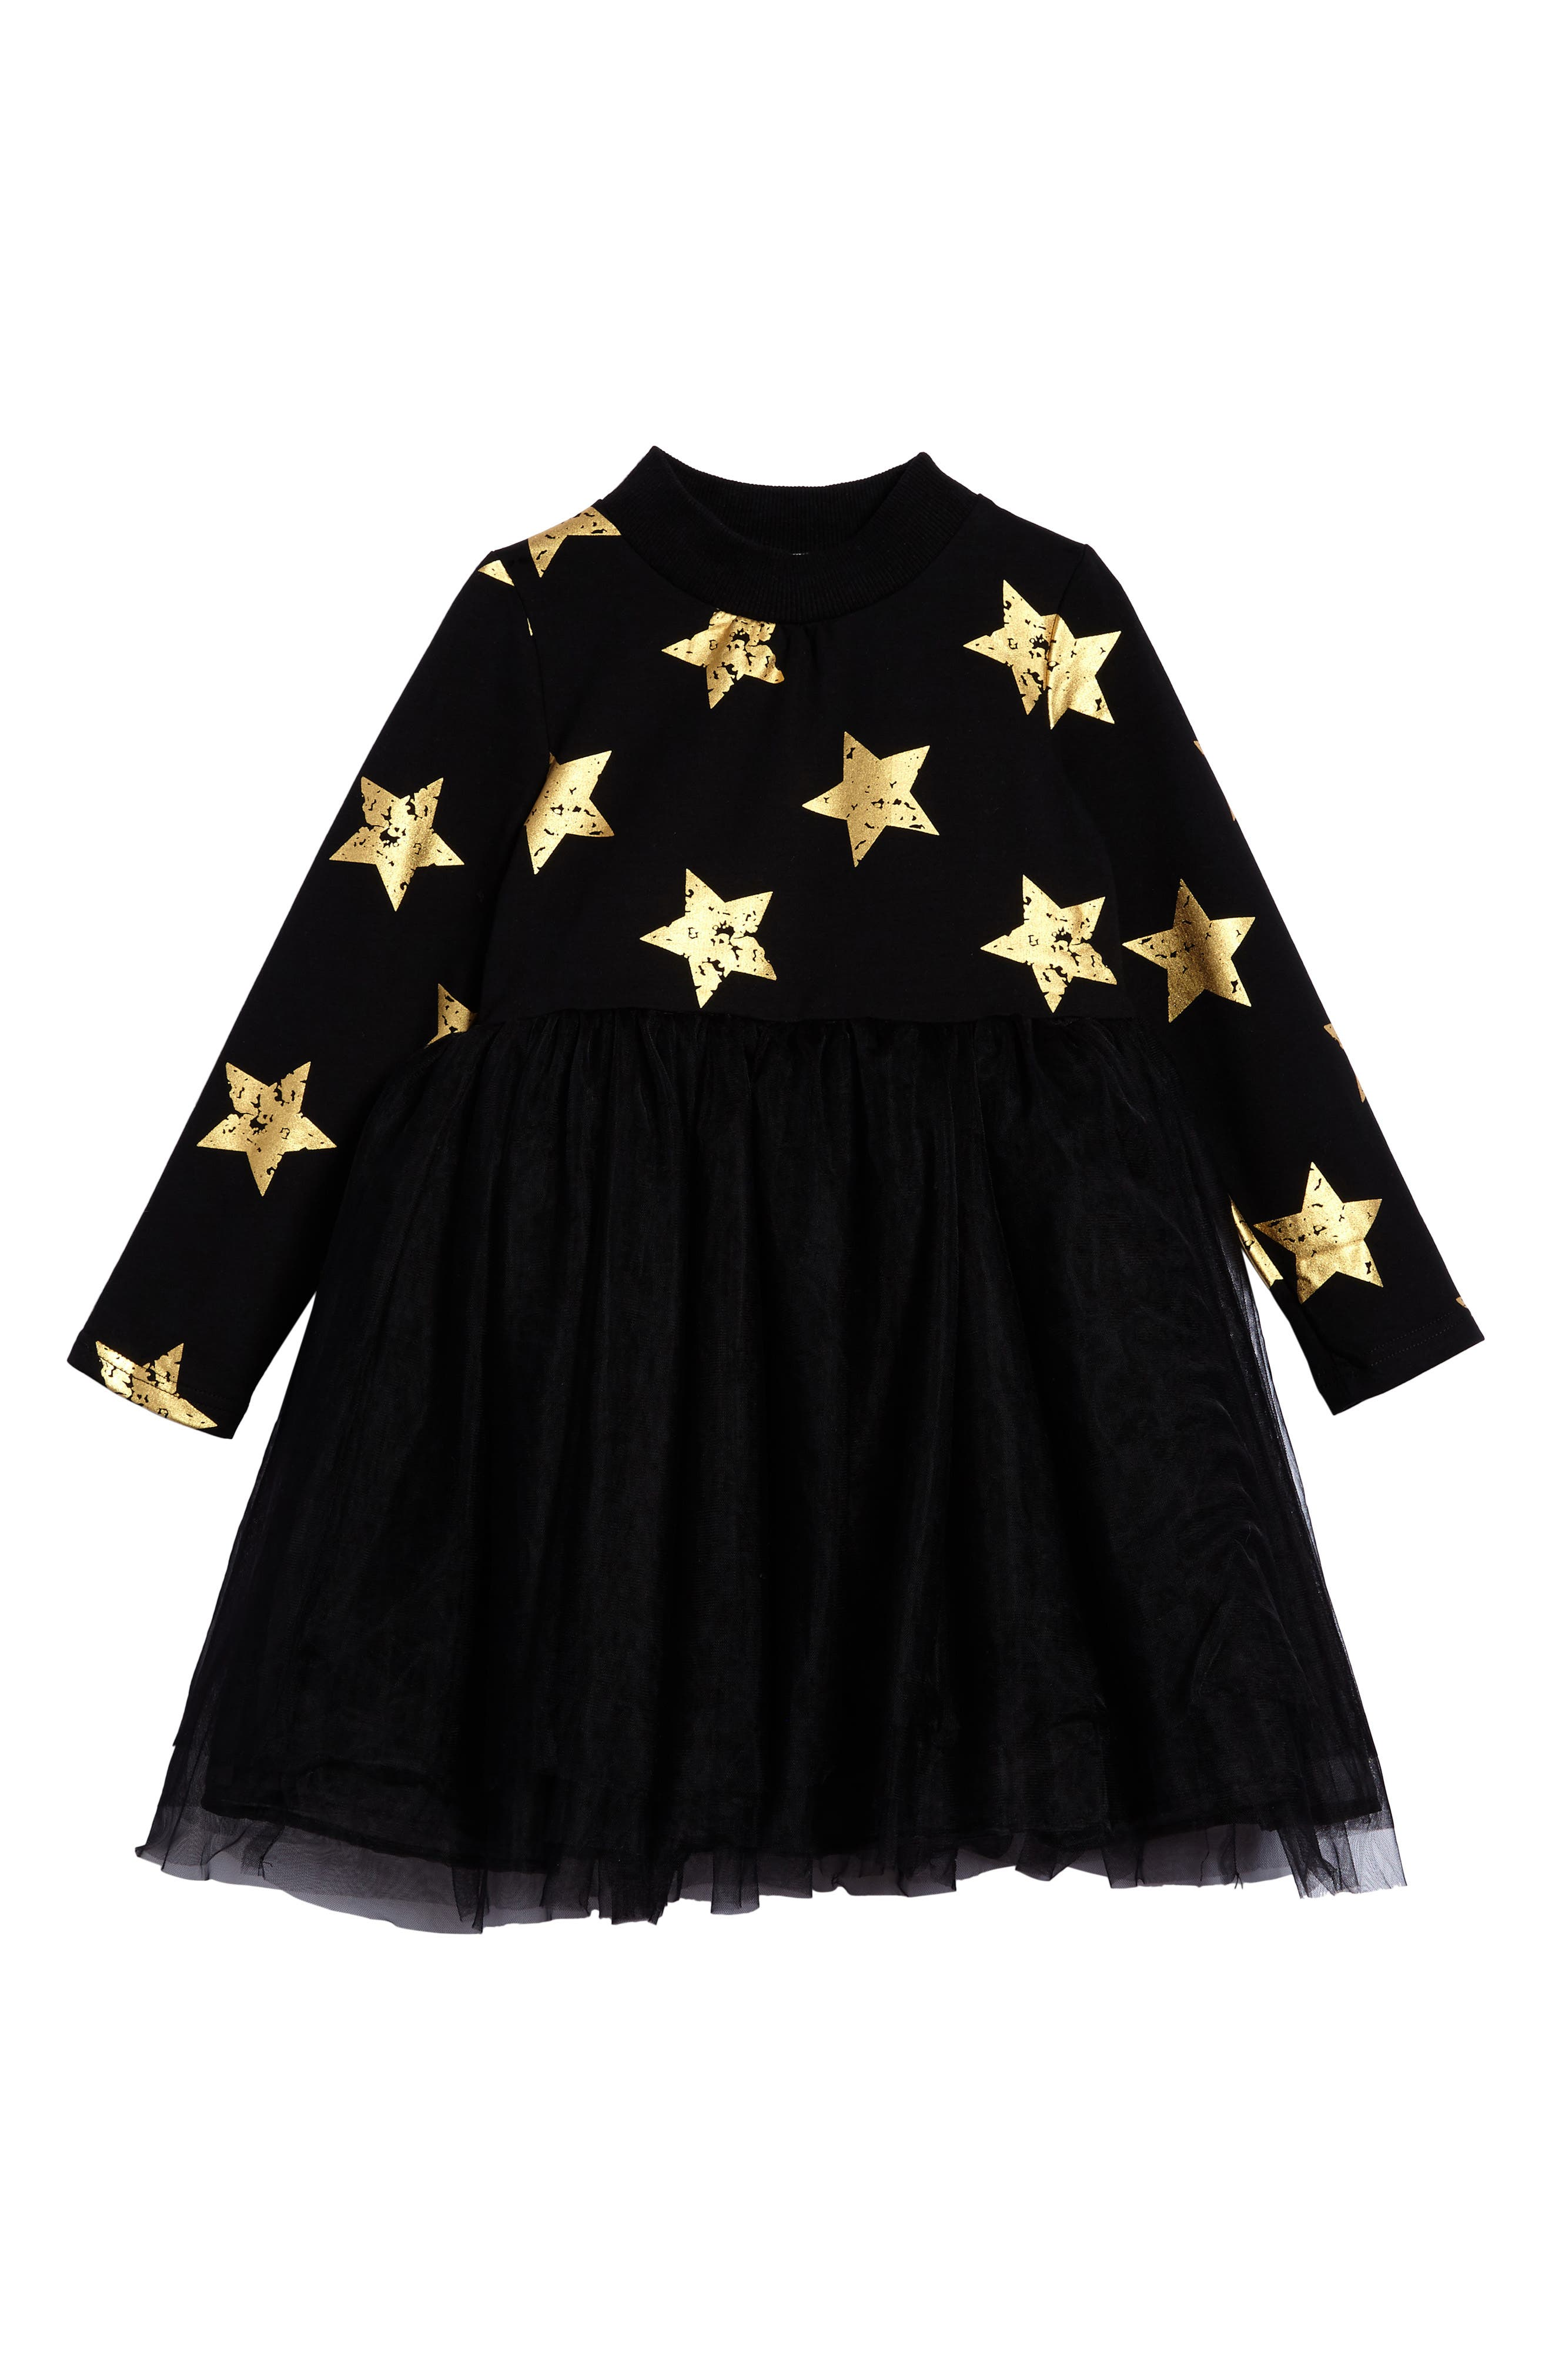 Star Tulle Party Dress,                             Main thumbnail 1, color,                             001